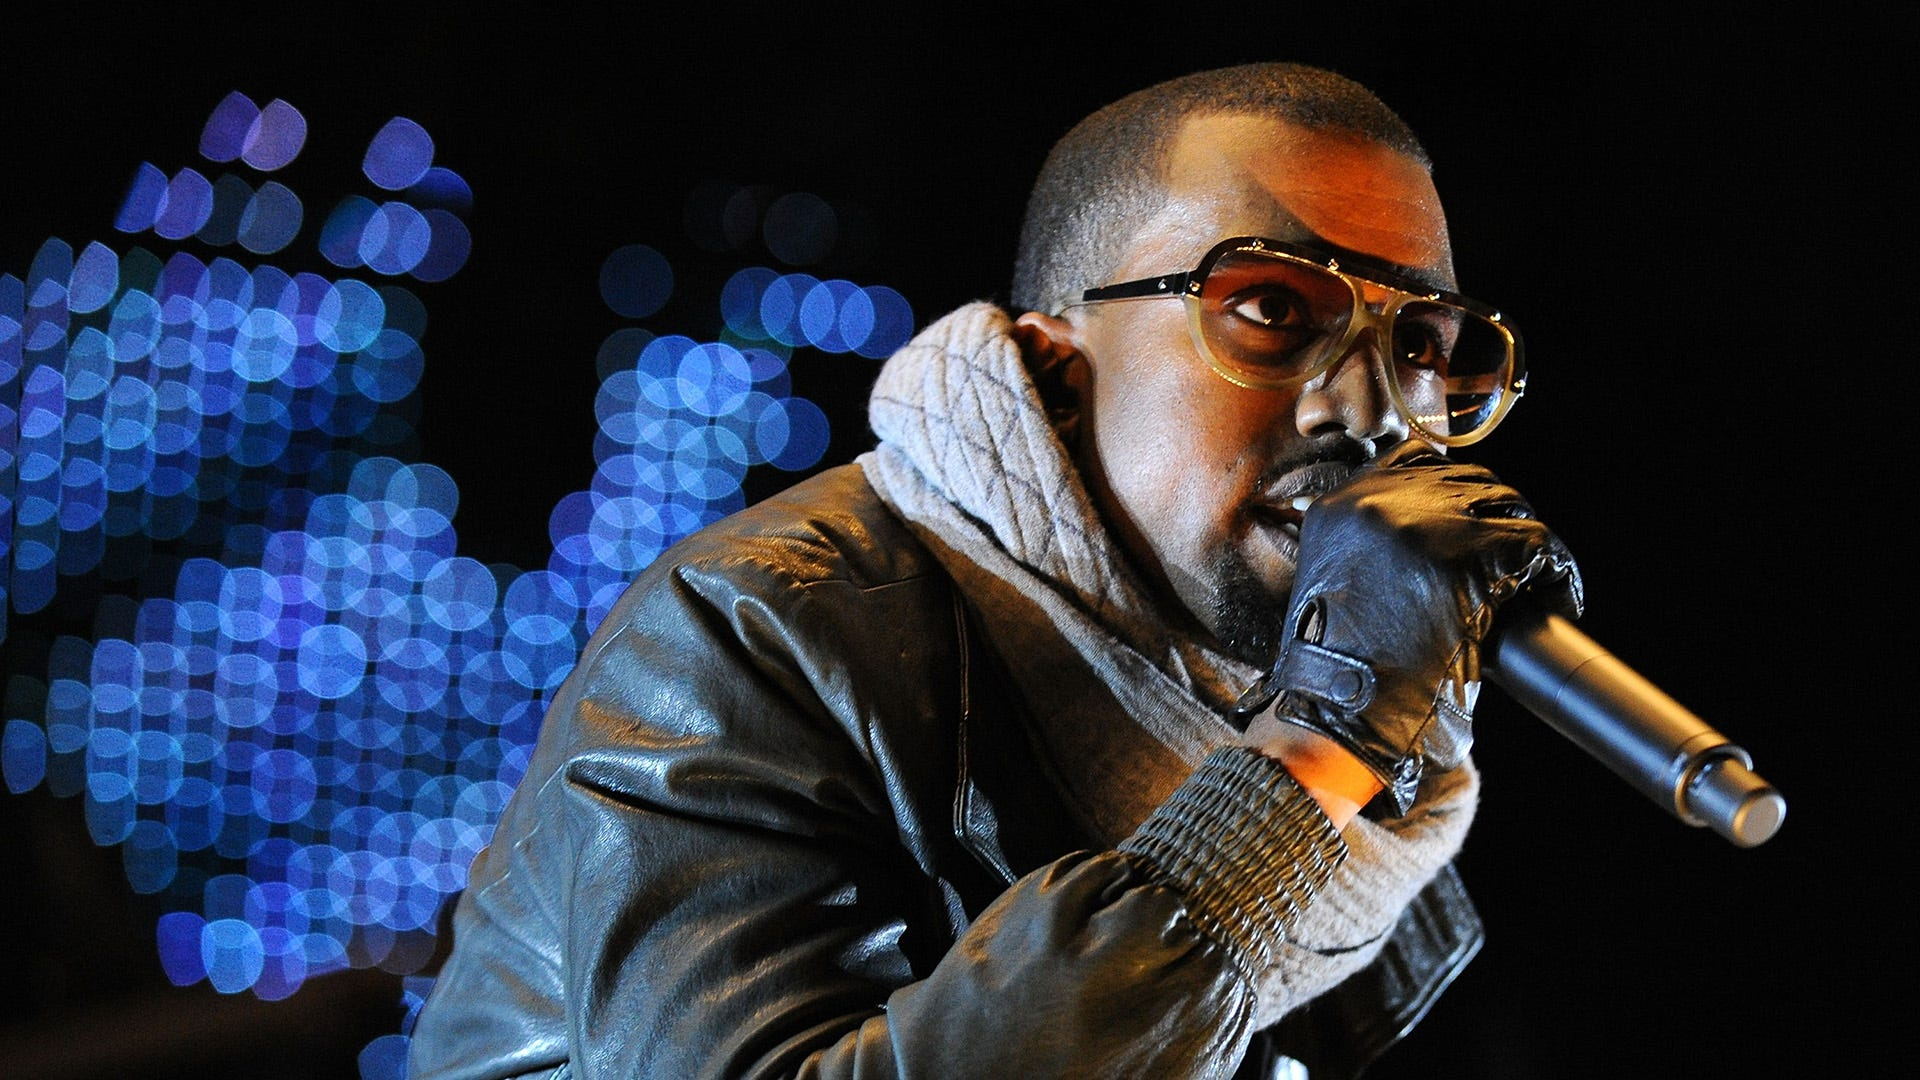 Celebrate the new era of Kanye West with Audacy's exclusive station